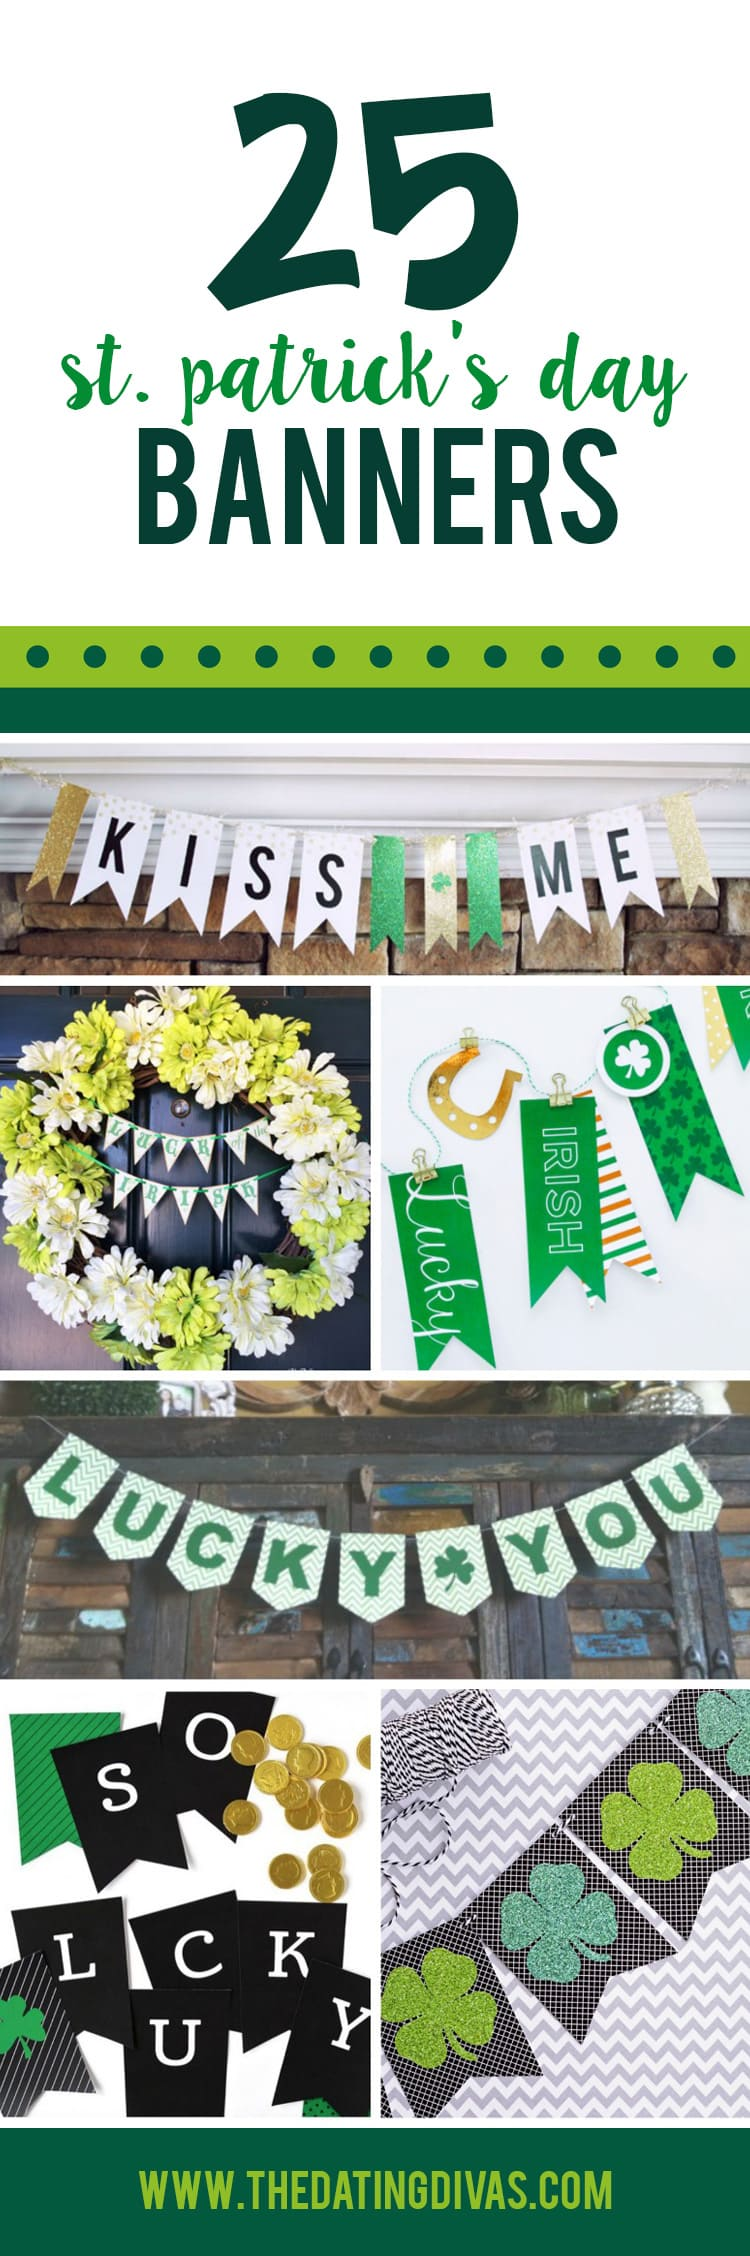 St. Patrick's Day Printable Banners ideas collage